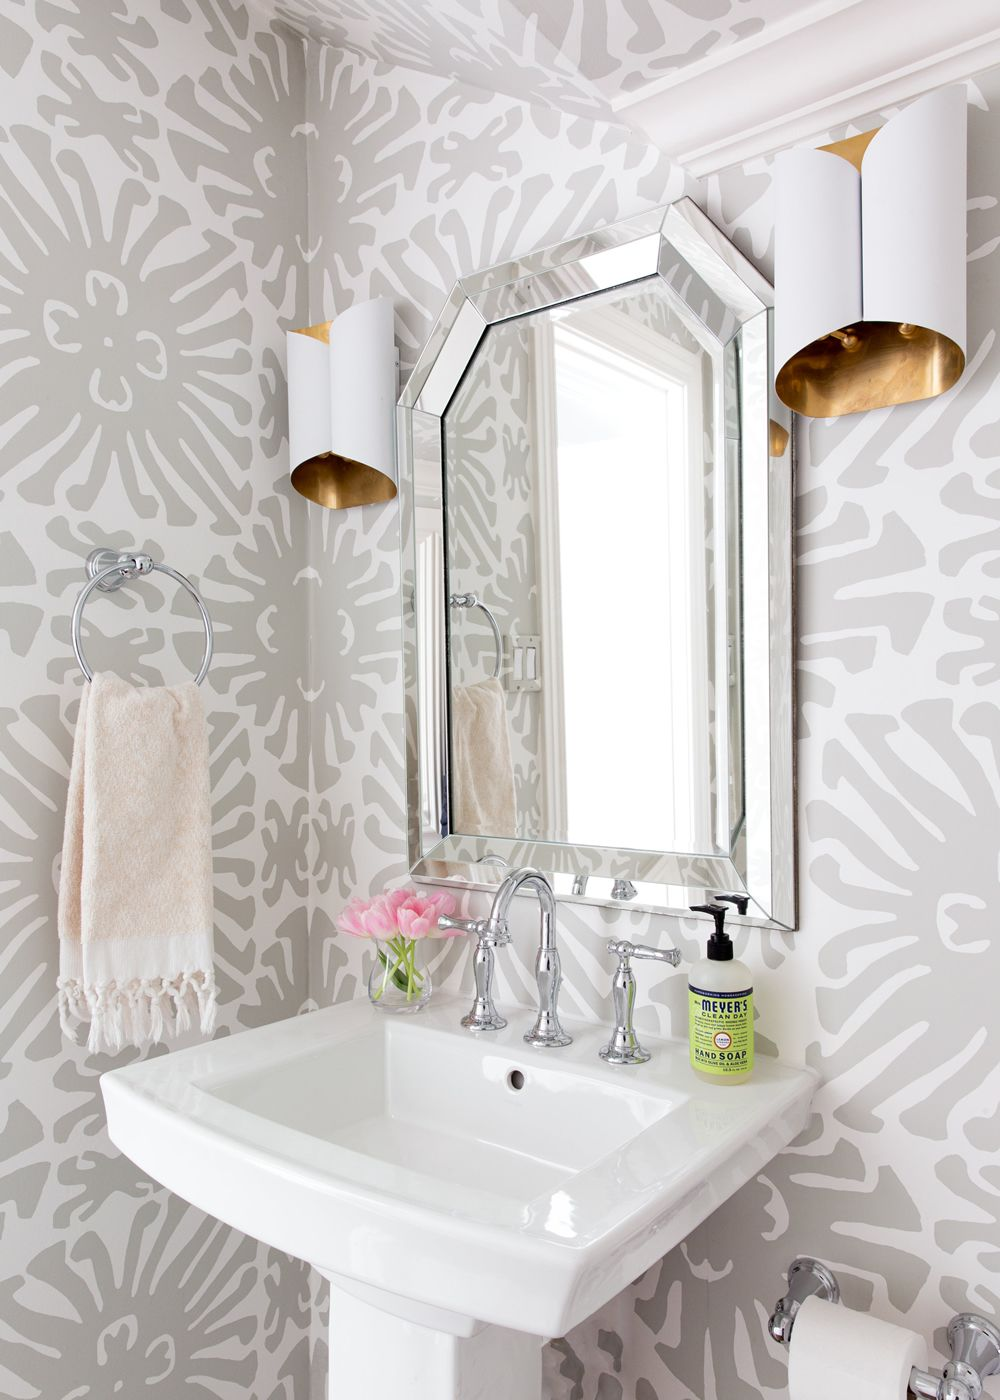 Oh My Goodness Love Love Love This Wallpaper Sigourney Large Scale 2470 13wp From Quadrille Powder Room Wallpaper Powder Room Small Bathroom Wallpaper